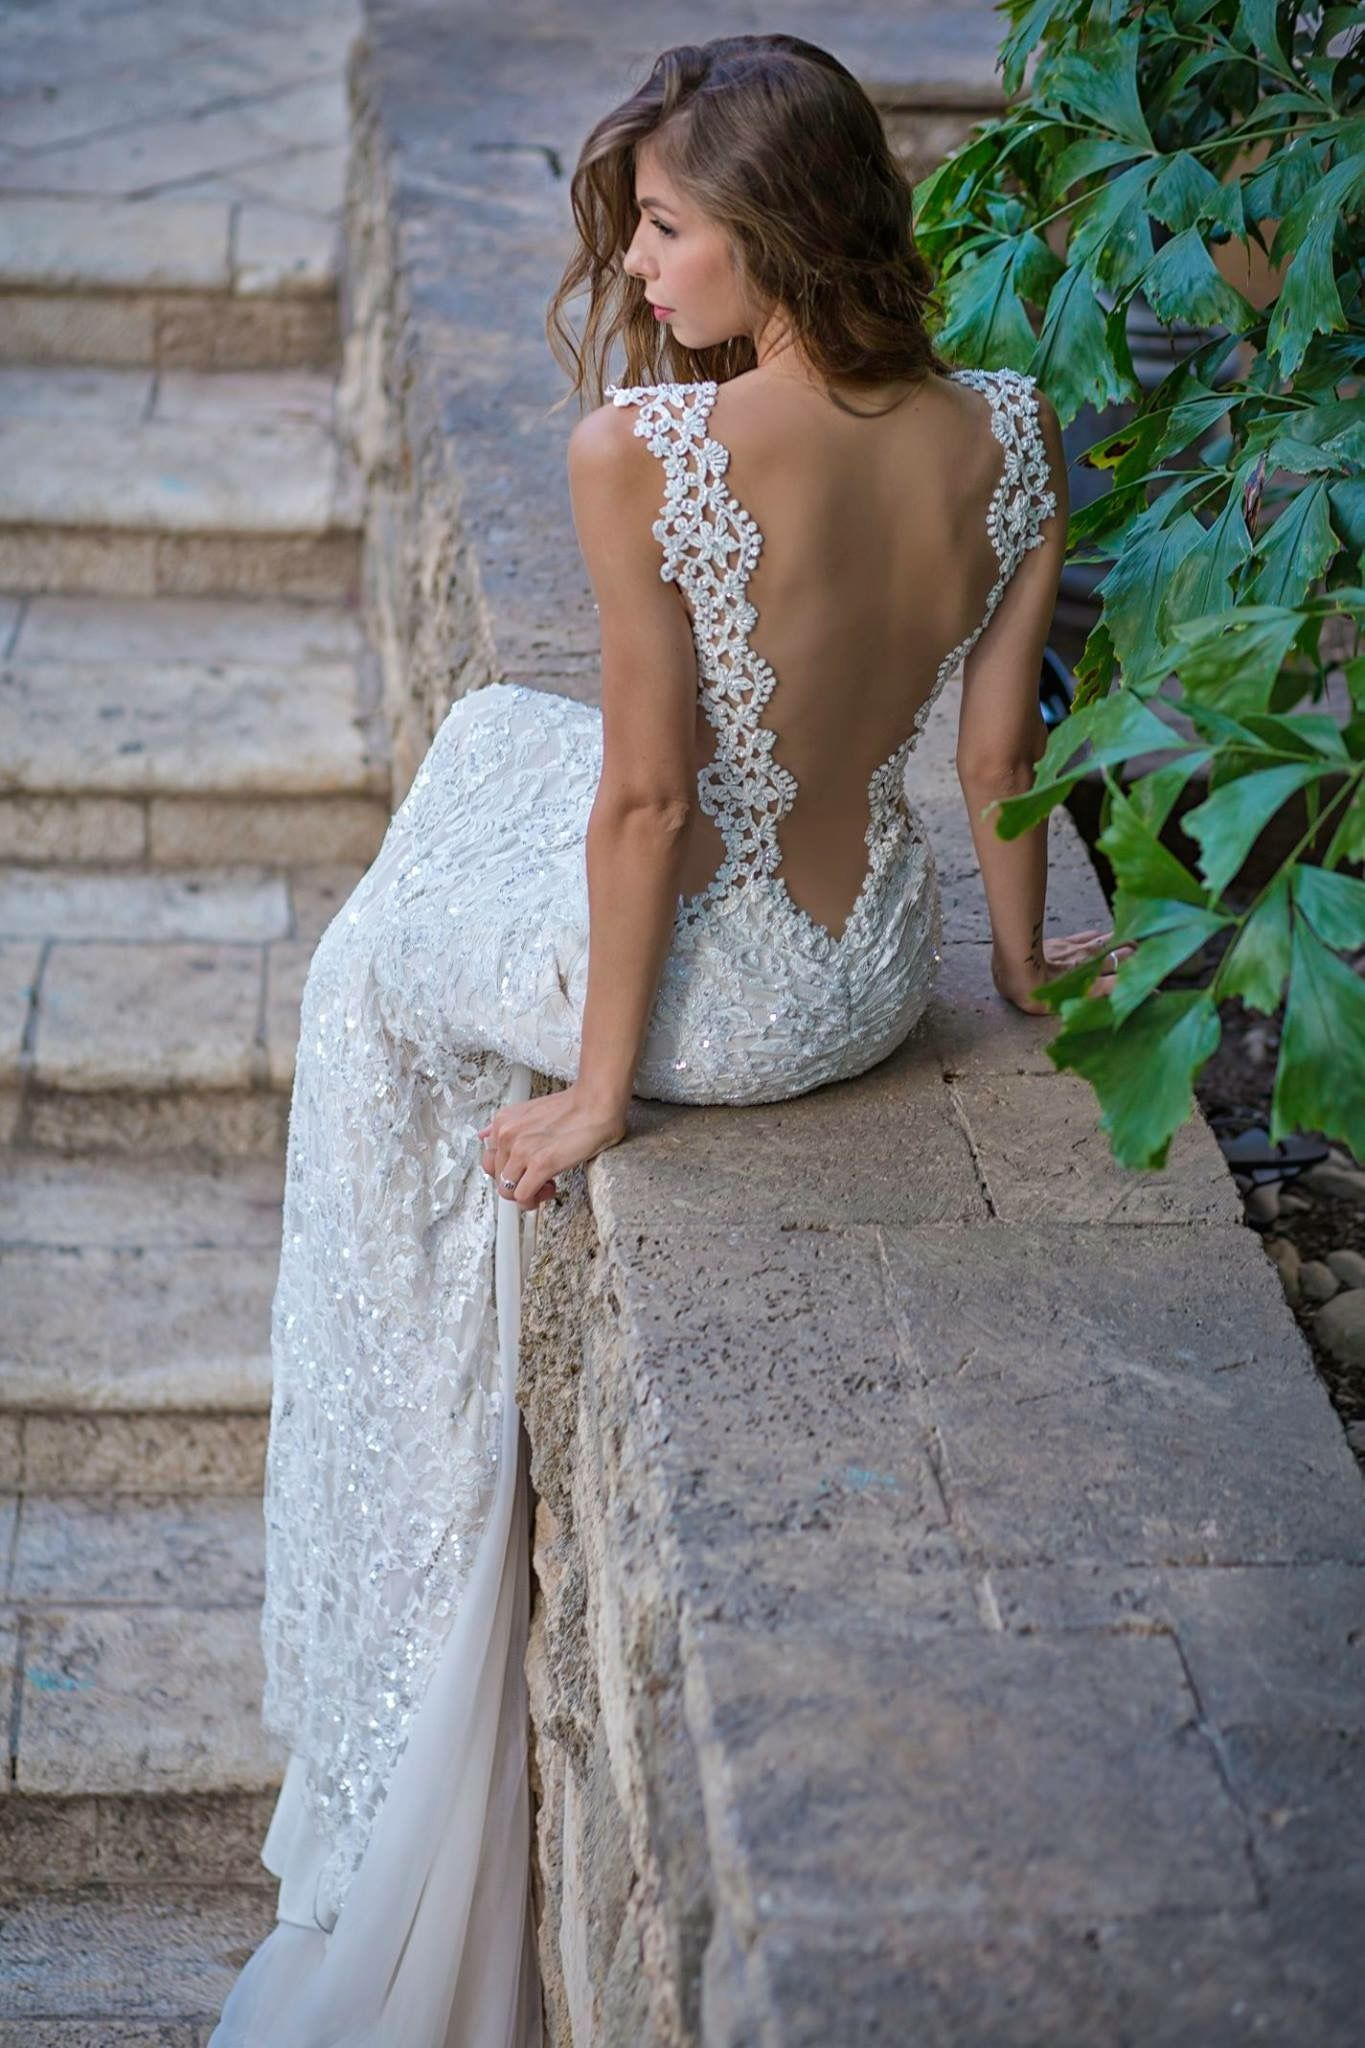 Embroidered lace wedding dress  Pin by Brittany Smythe on Wedding Dresses  Pinterest  Wedding